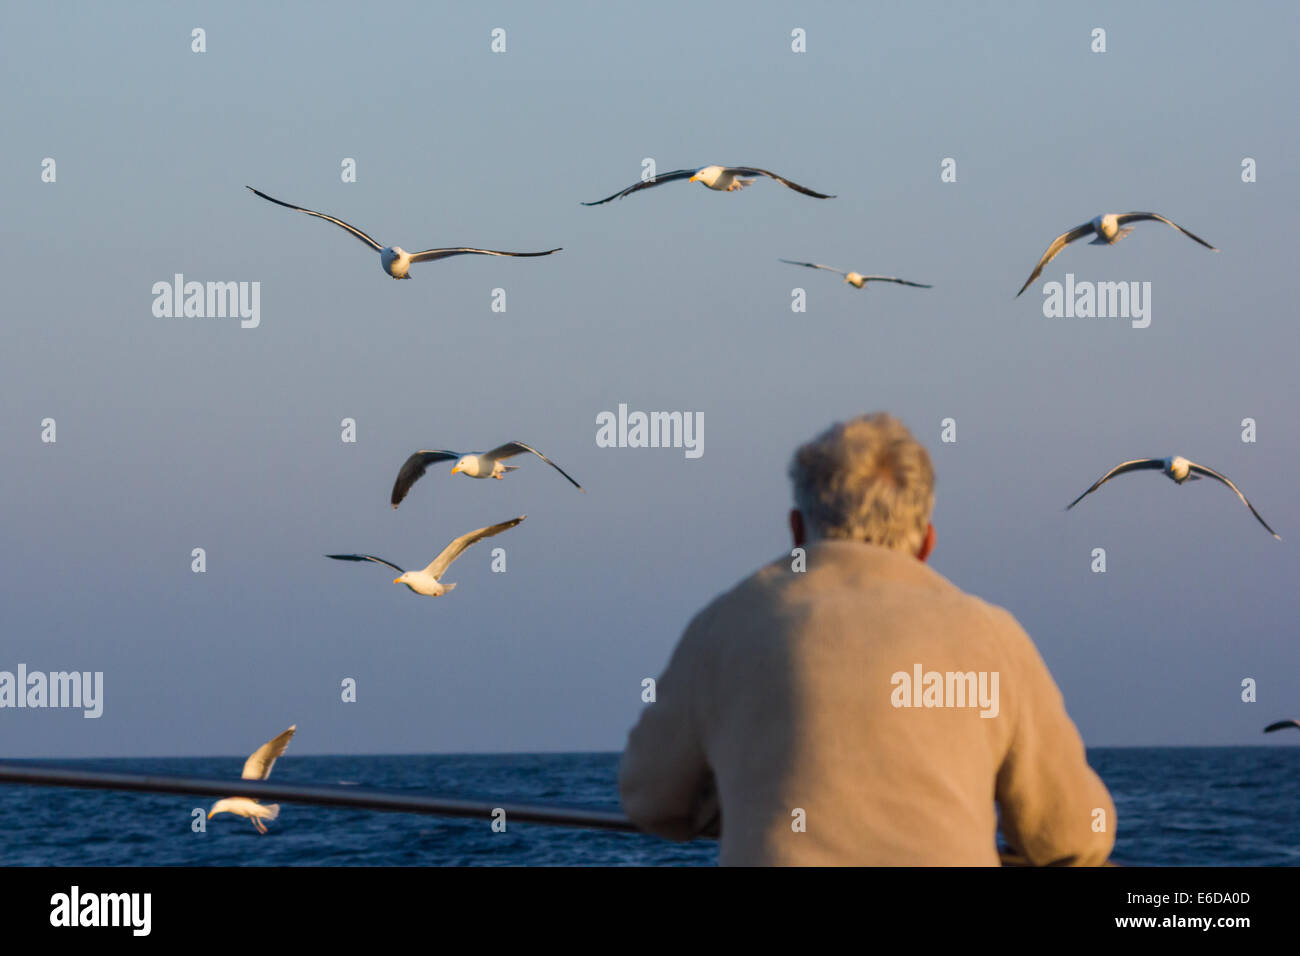 A man watches the gulls that follow behind a fishing boat on its return from its trip, Isles of Scilly, June Stock Photo